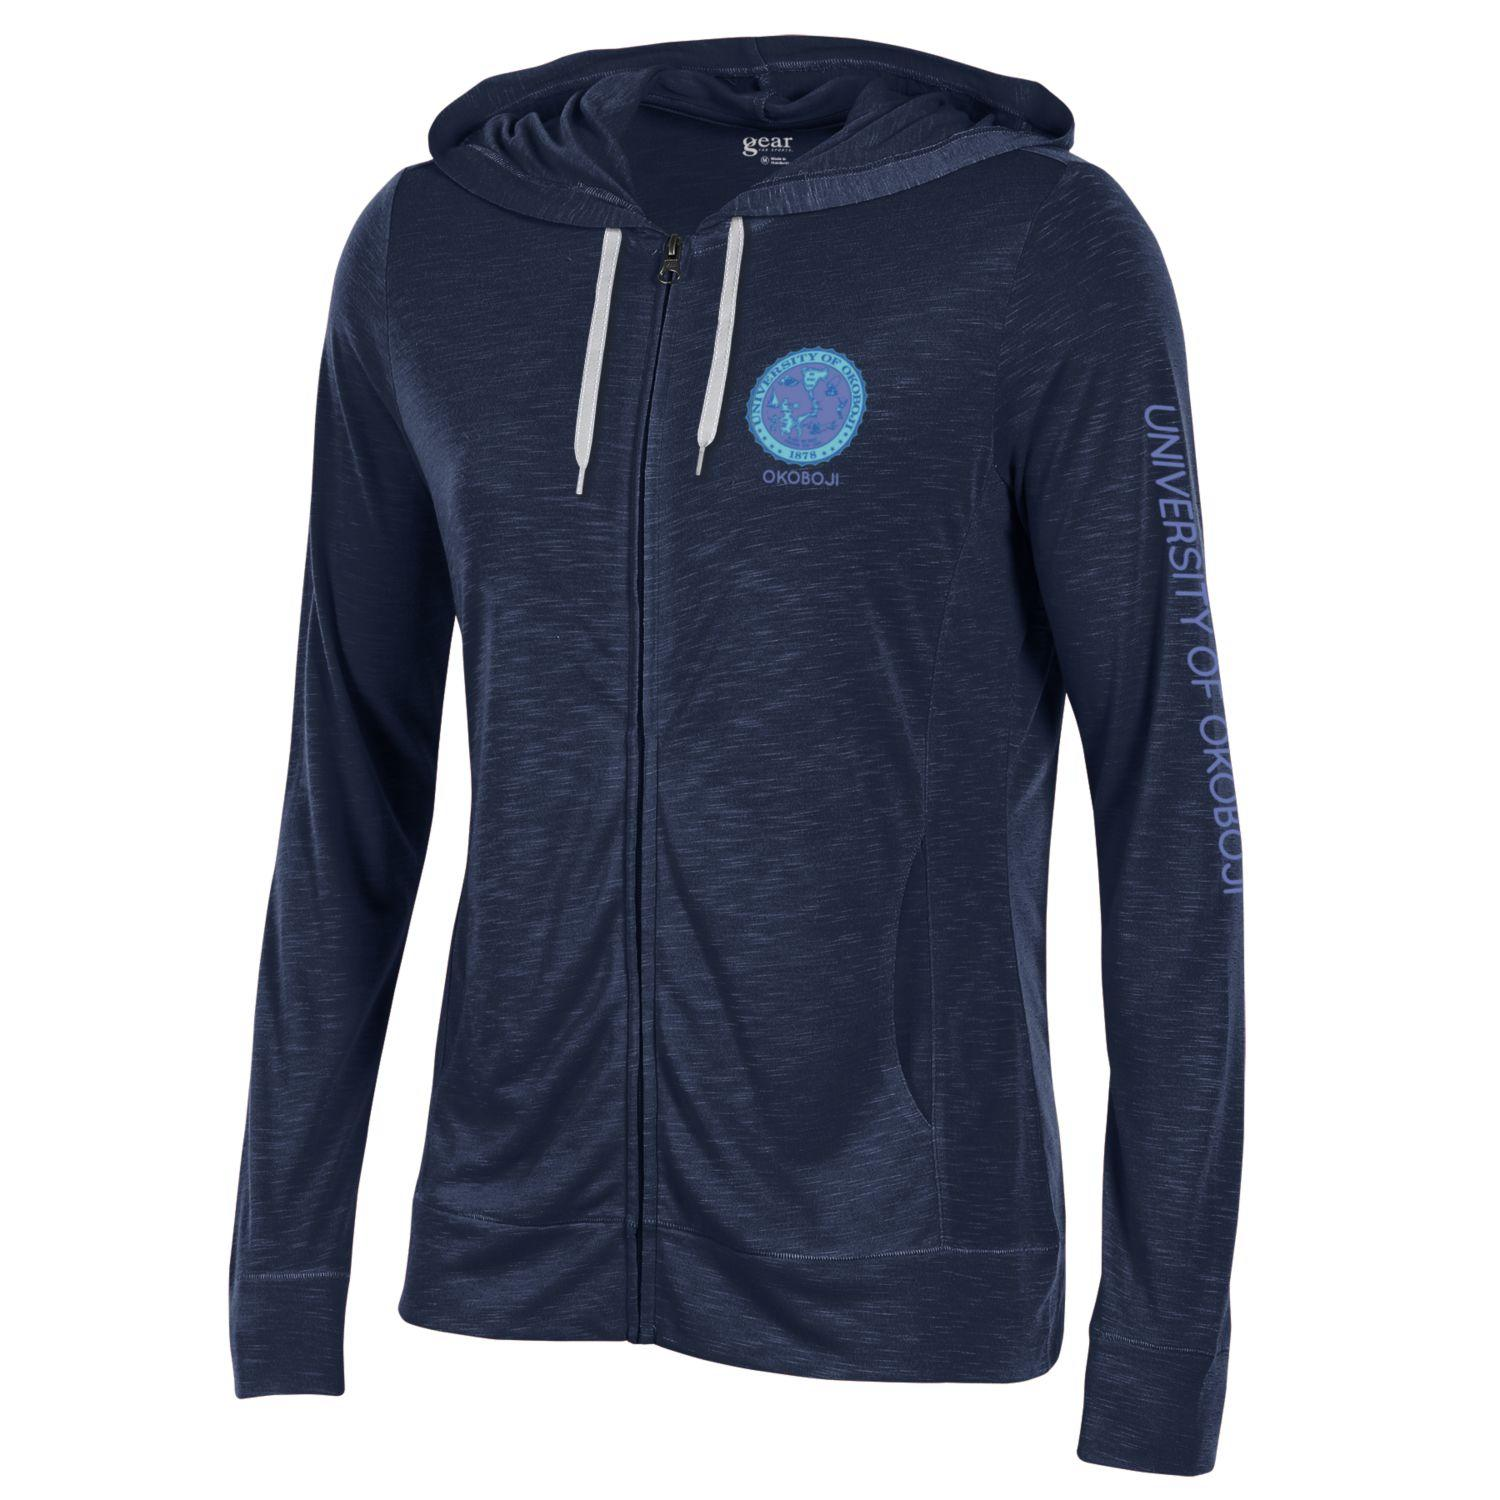 Women's Nightsky U of O Crest  Lightweight Full-Zip